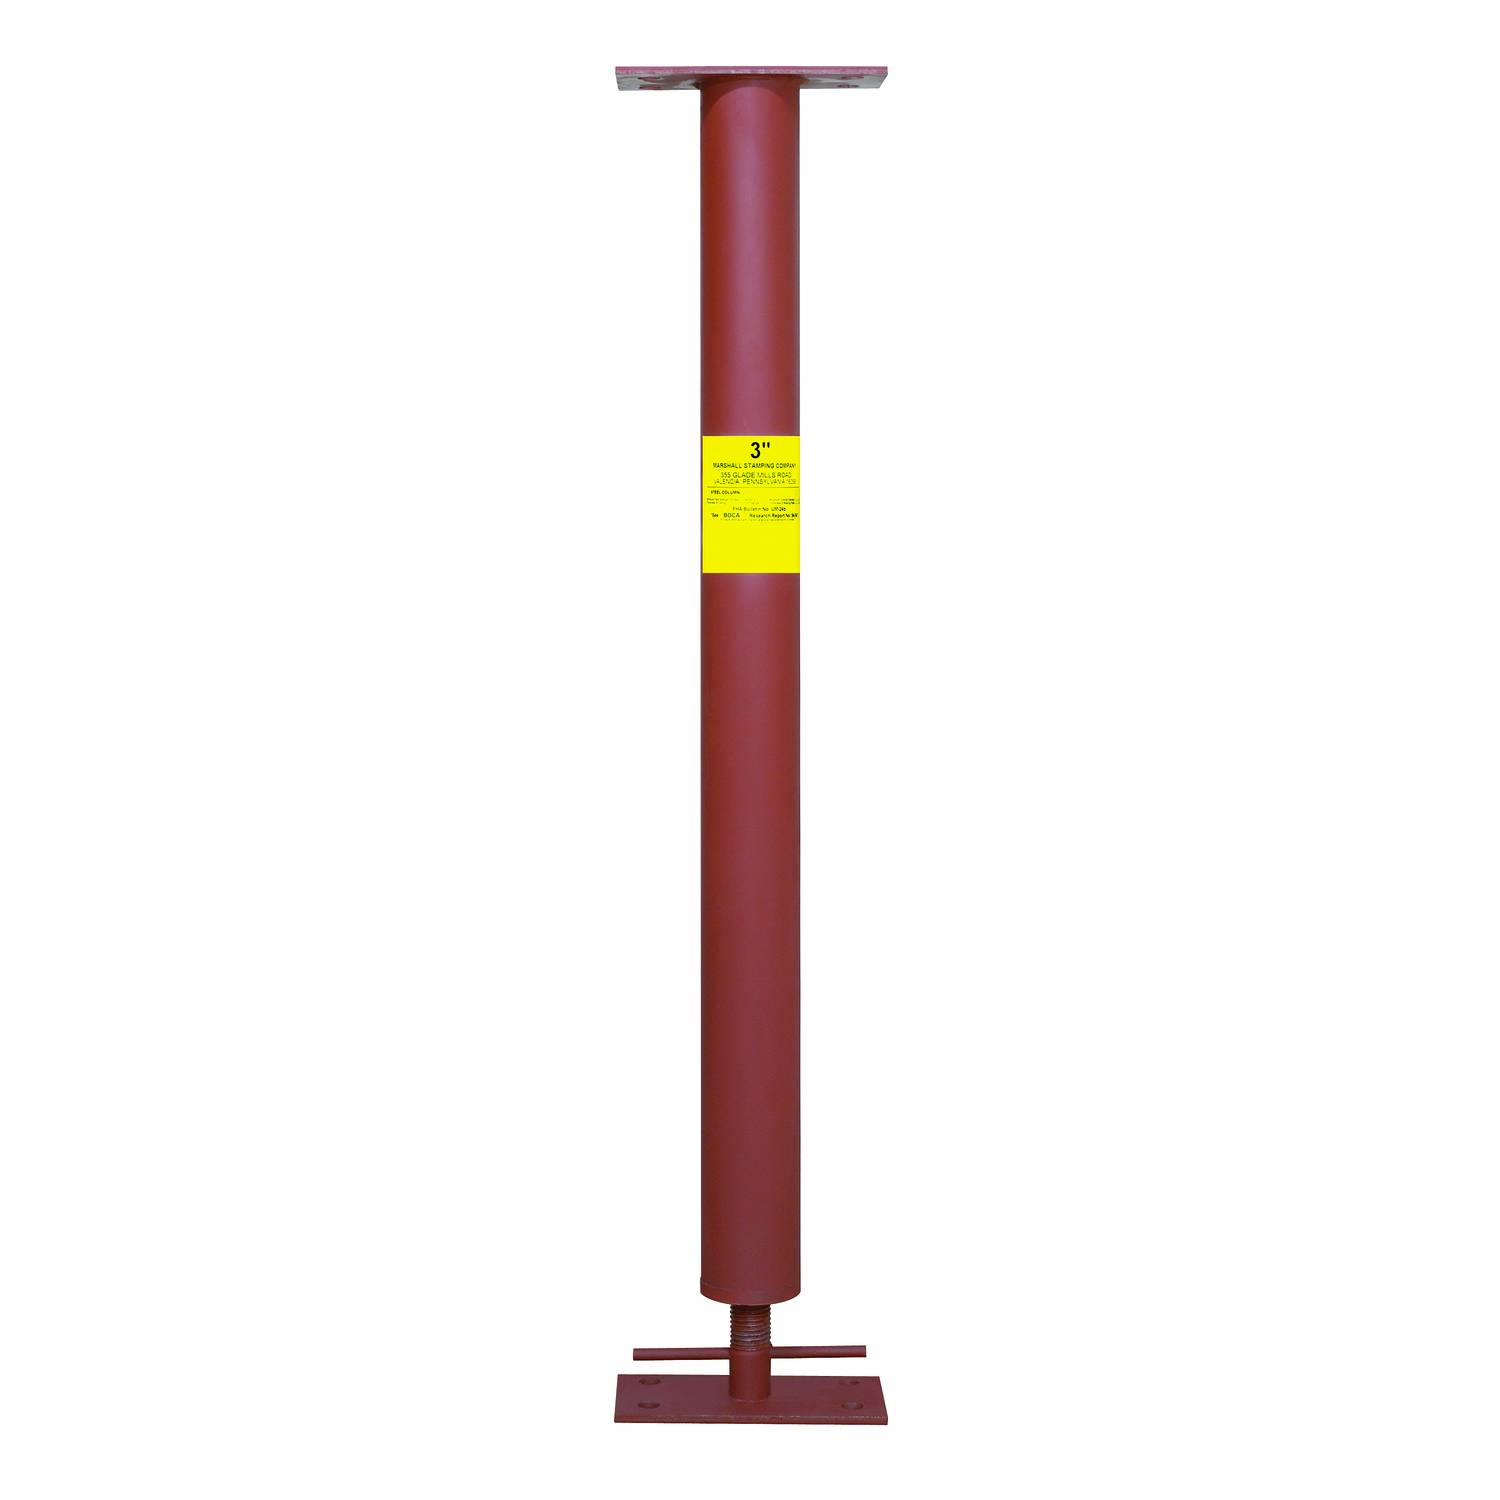 Marshall Stamping Extend-O-Columns 3 in. Dia. x 103 in. H Adjustable Building Support Column 1420